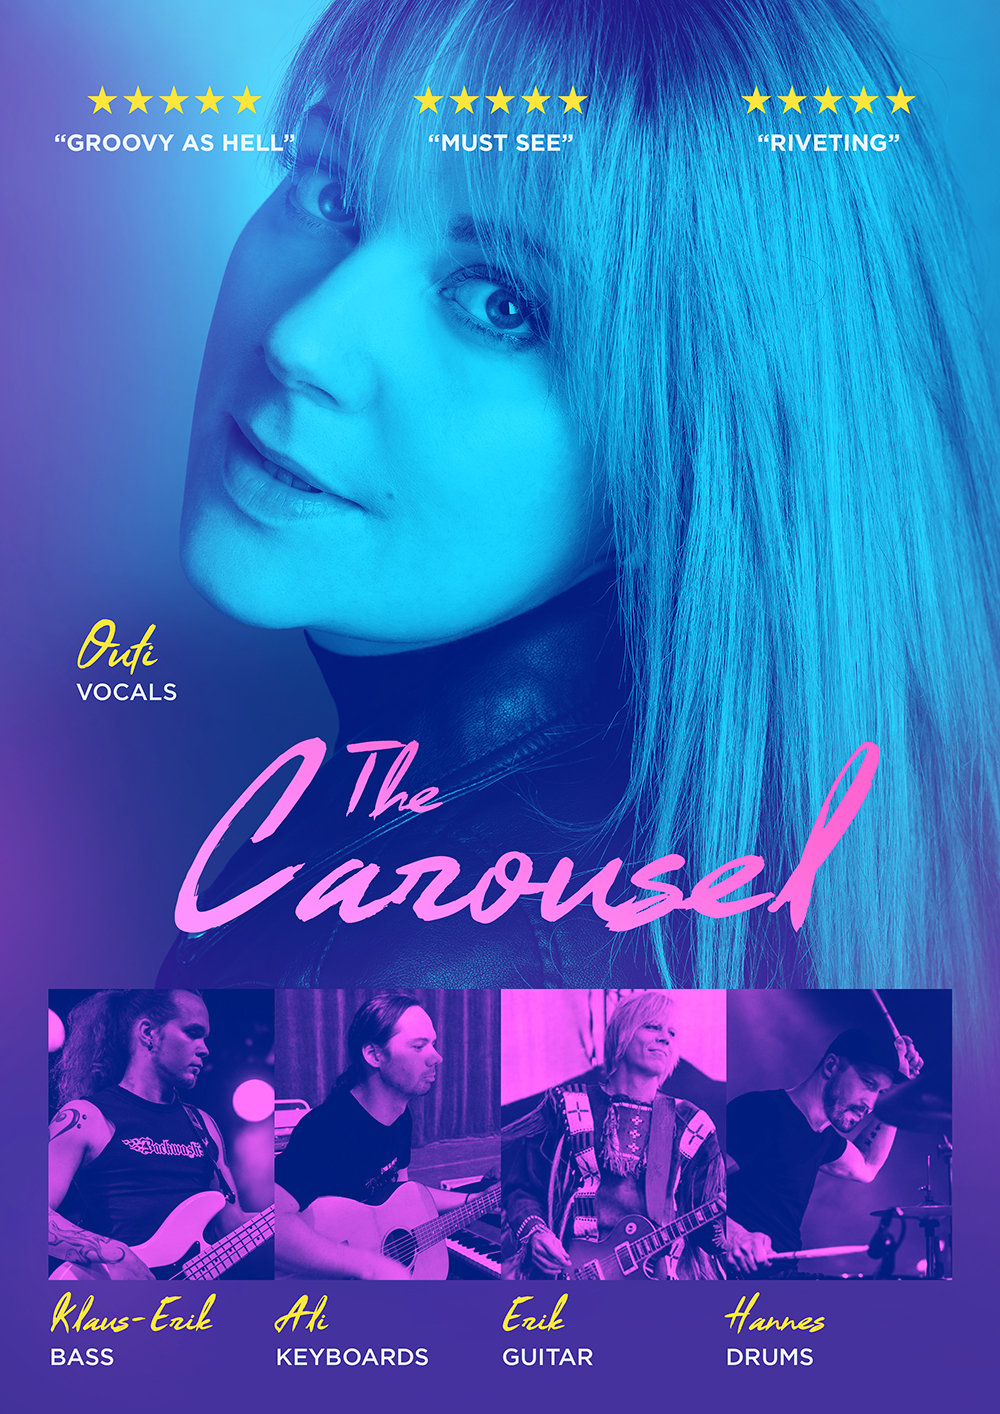 the_carousel_juliste_a3_300dpi_2018.jpg